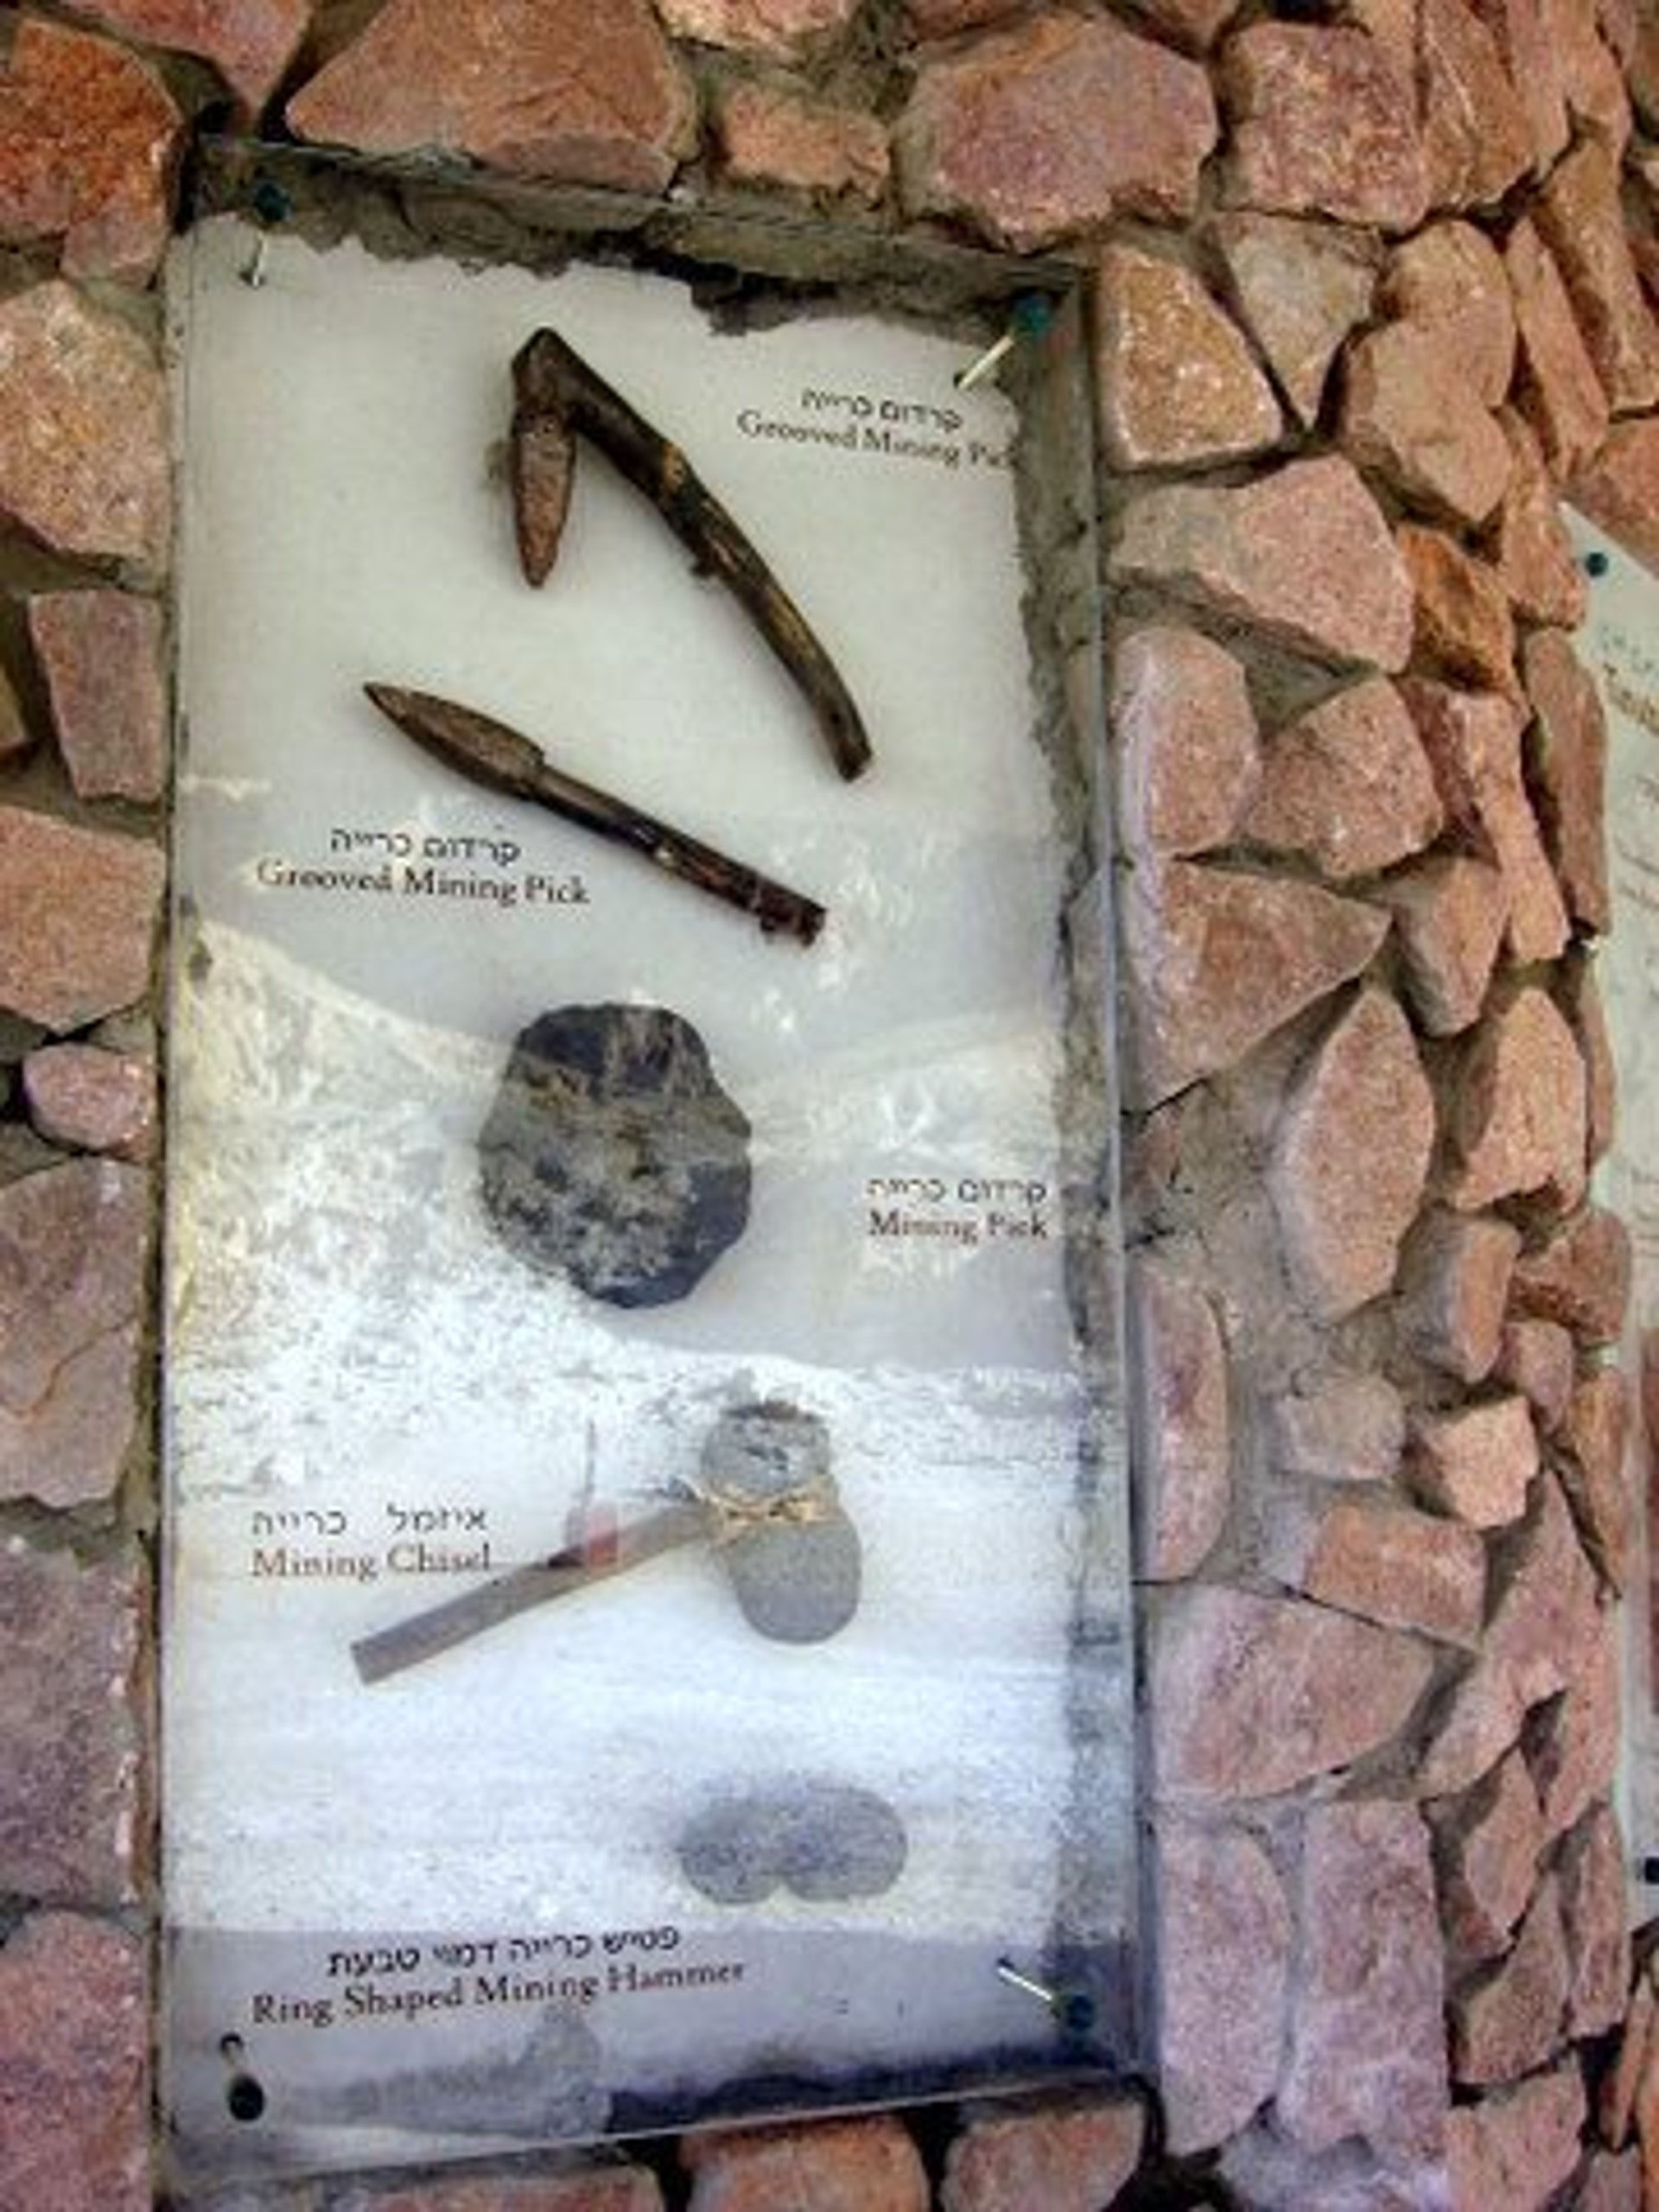 Mining tools from the Egyptian period found at Timna